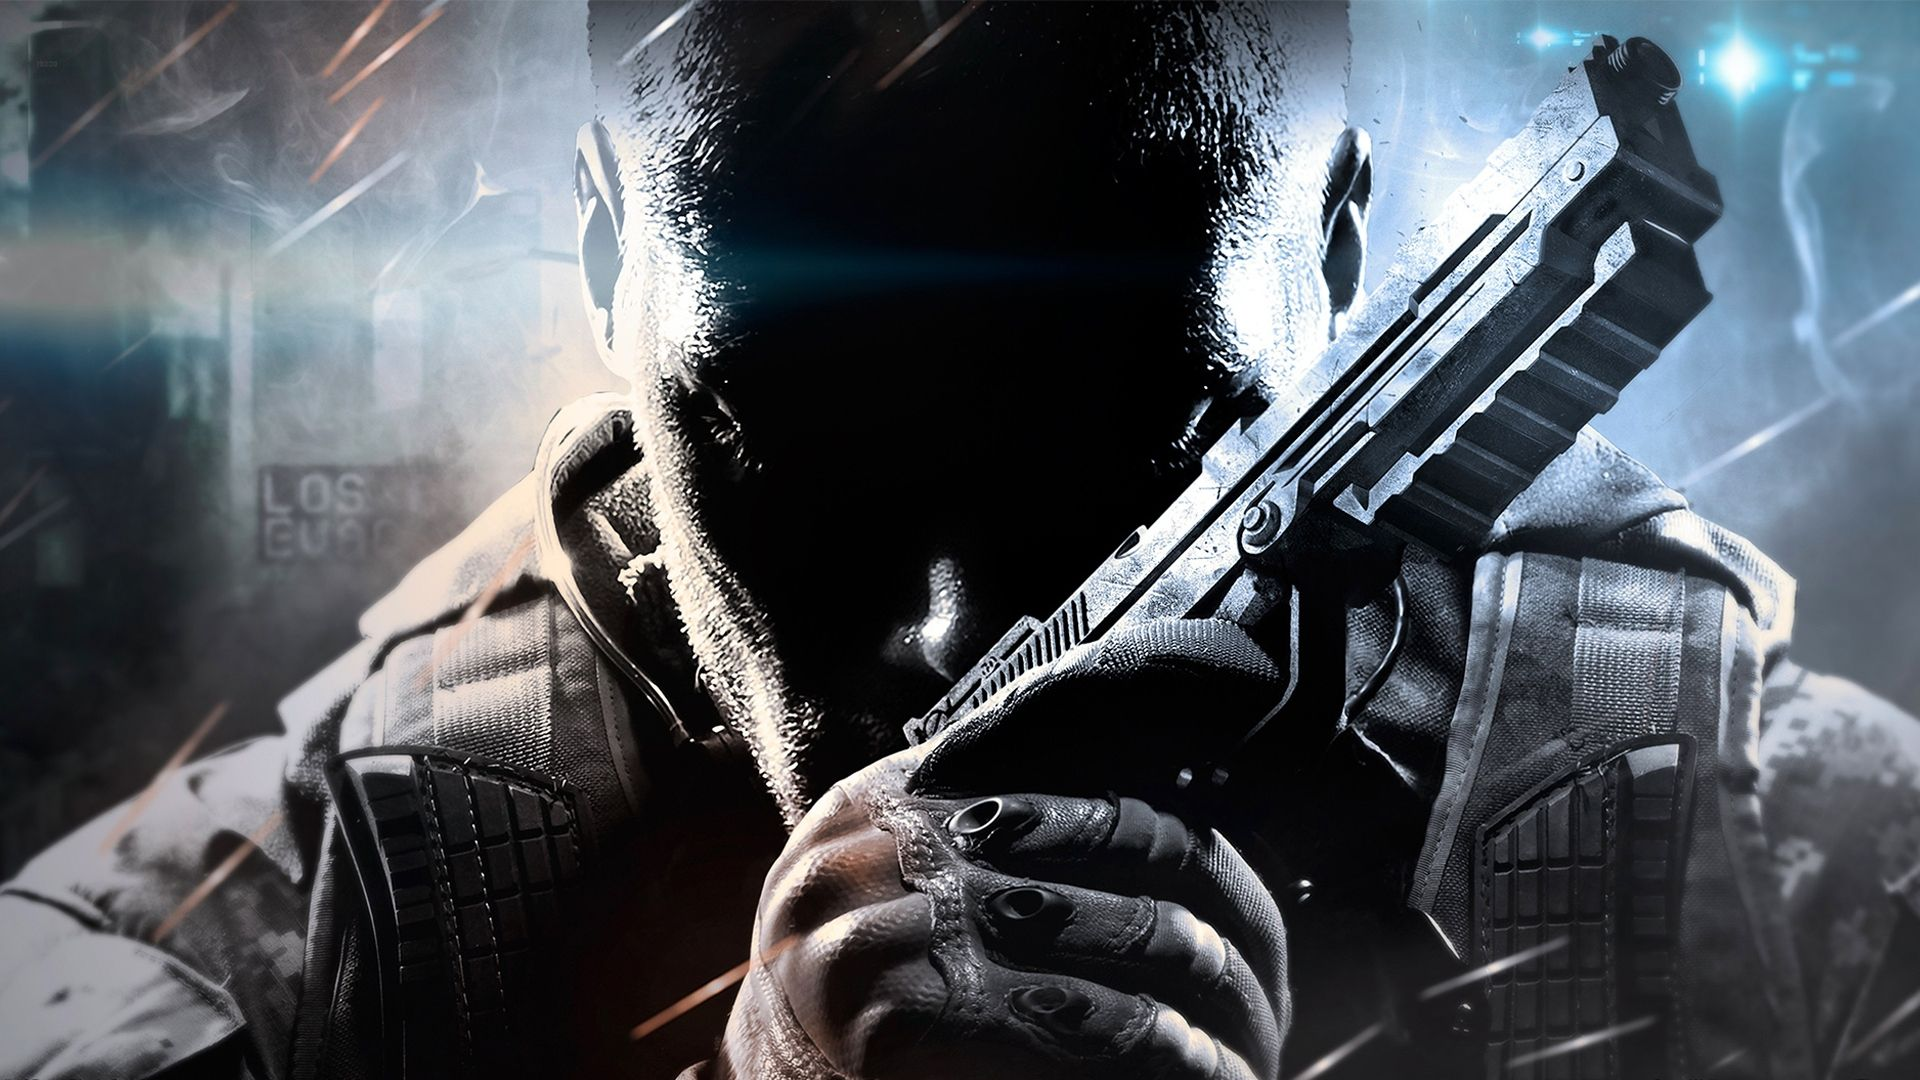 Video Game Call Of Duty Black Ops Ii Wallpaper Background 1920 X 1080 Call Of Duty Black Call Of Duty Black Ops 3 Call Of Duty